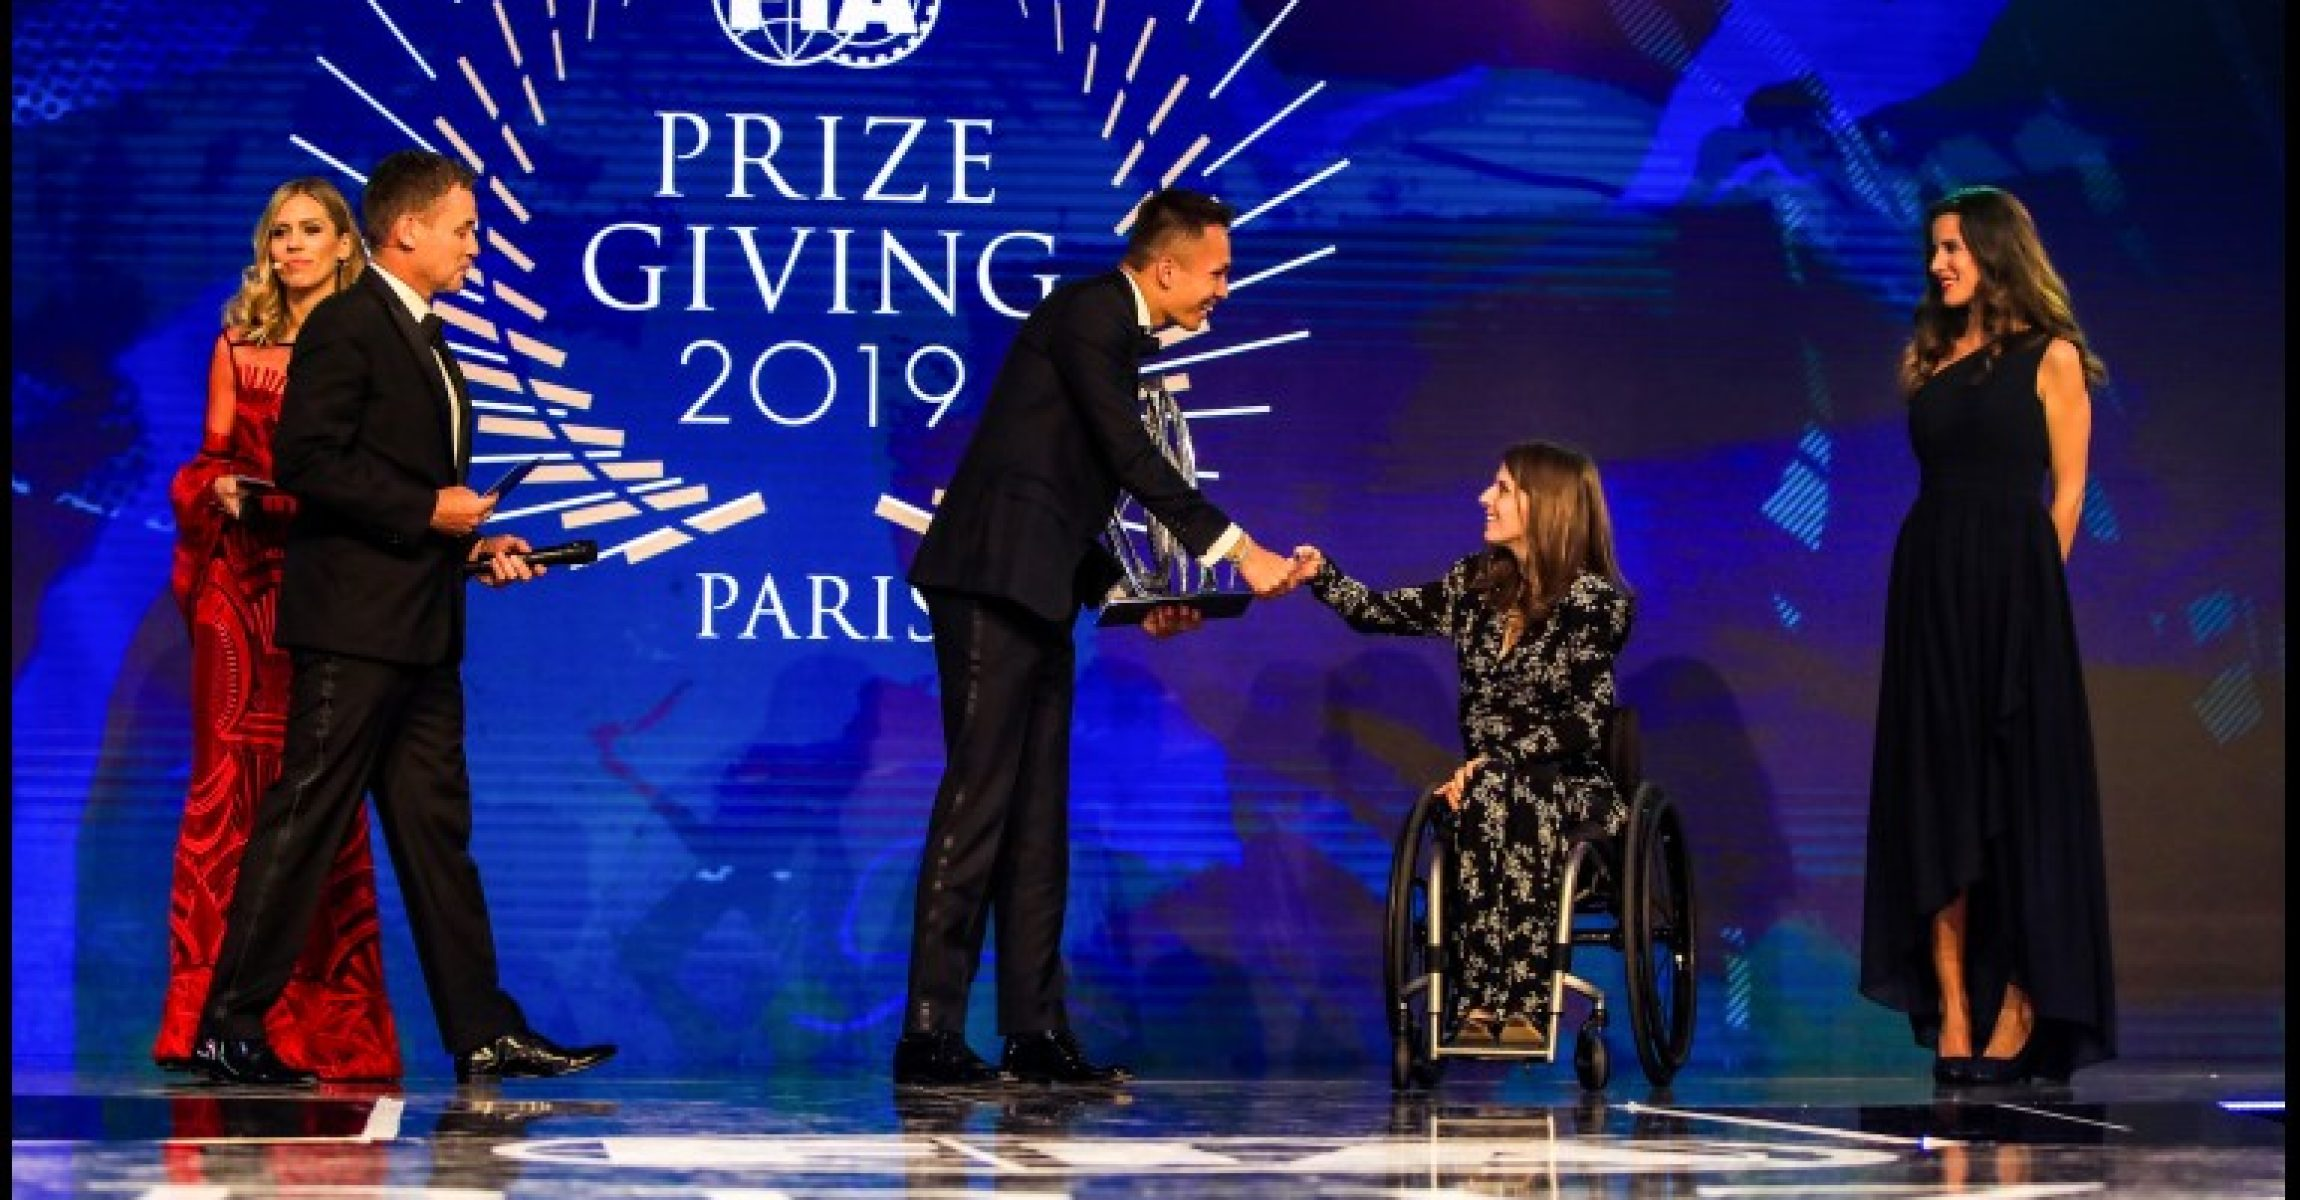 FIA Prize Giving Gala 2019, Paris, Alexander Albon Red Bull Racing